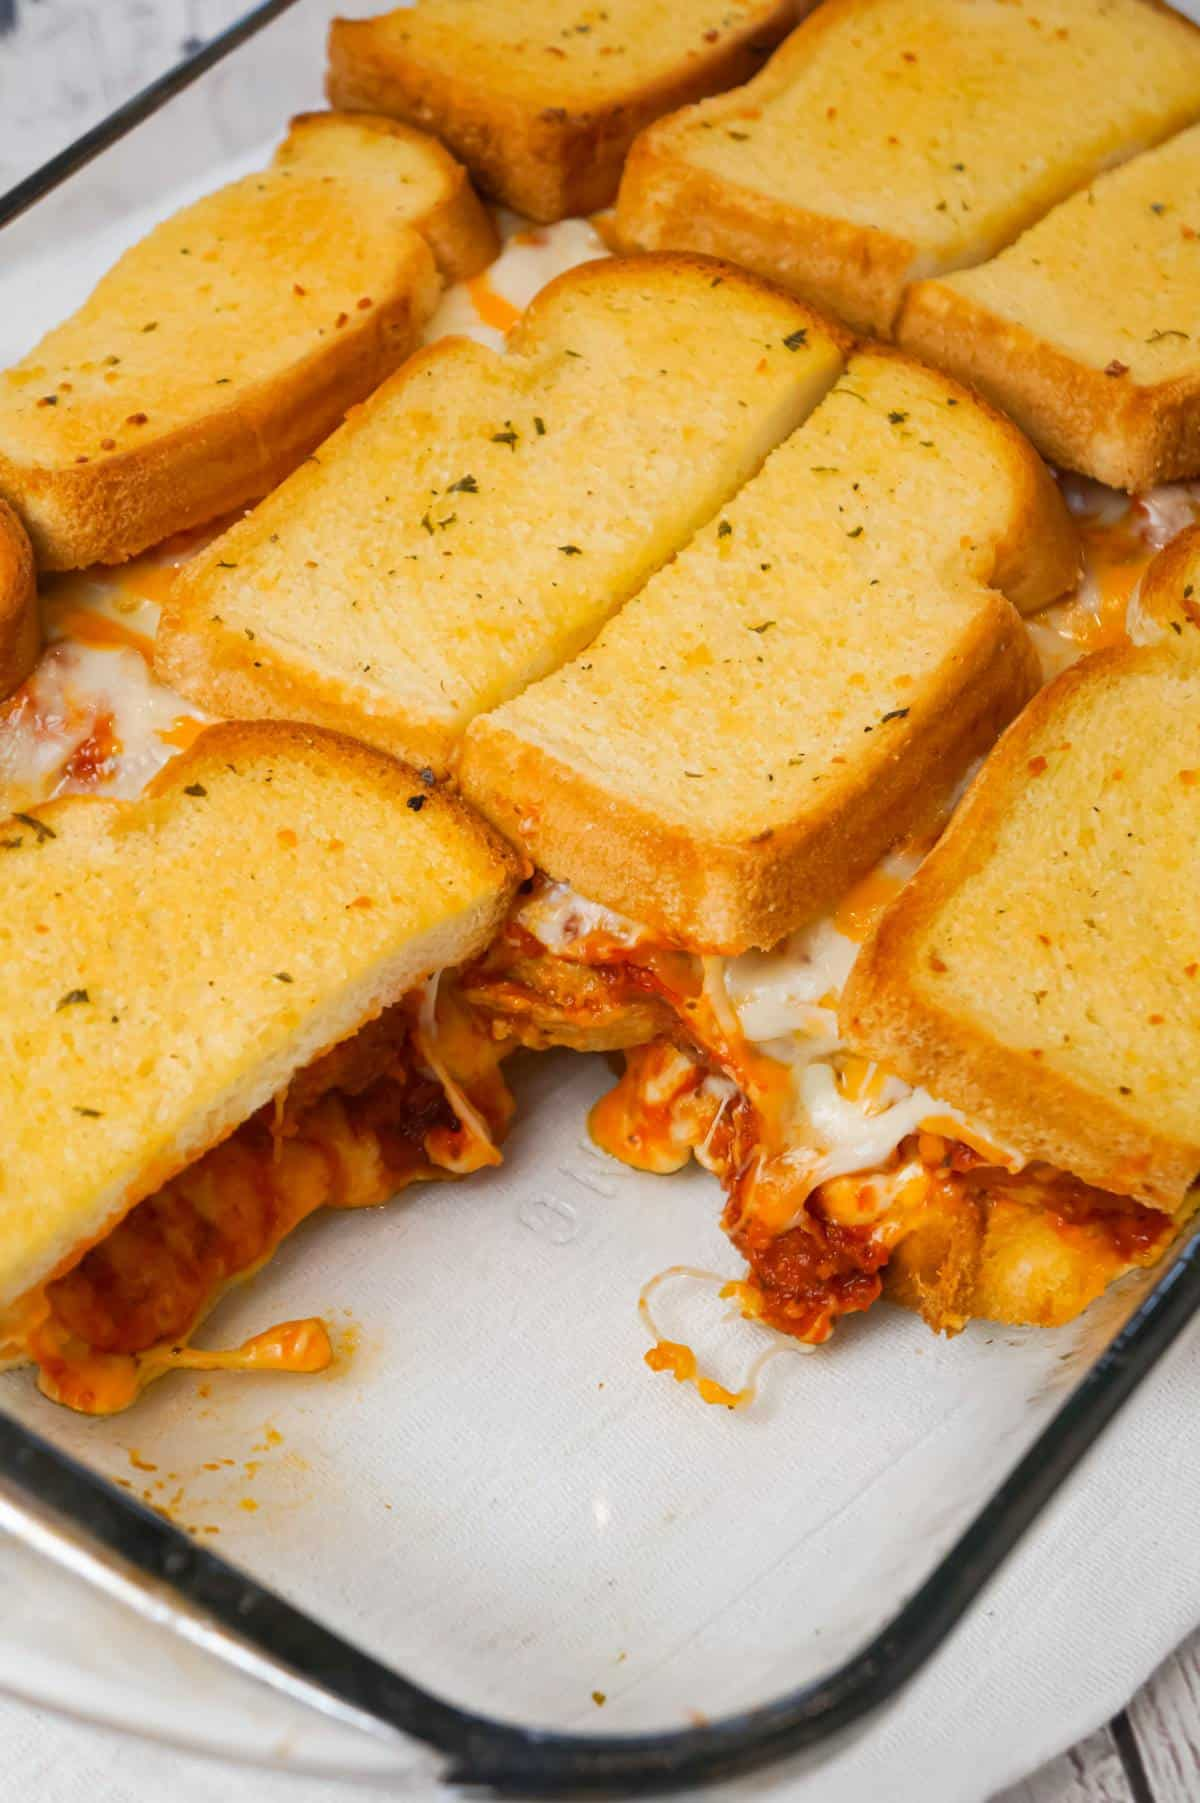 Meatball Sub Grilled Cheese Casserole is an easy casserole recipe made with Italian style meatballs, marinara sauce and loaded with cheese all sandwiched between layers of garlic toast.